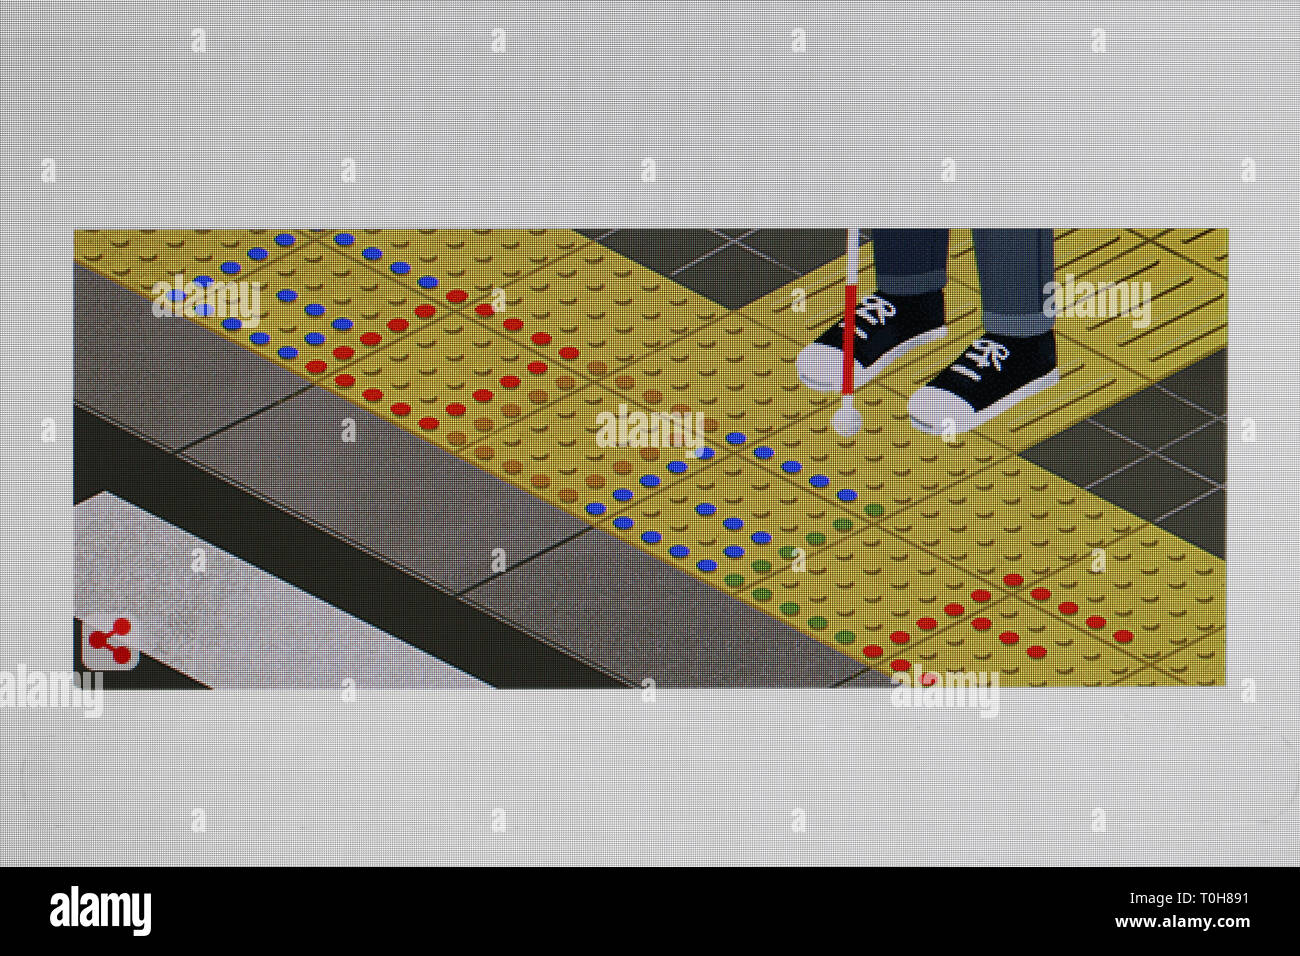 Special google doodle logo pays tribute to japanese inventor Seiichi Miyake, inventor fo tenji or tactile blocks in public places for blind people. Stock Photo